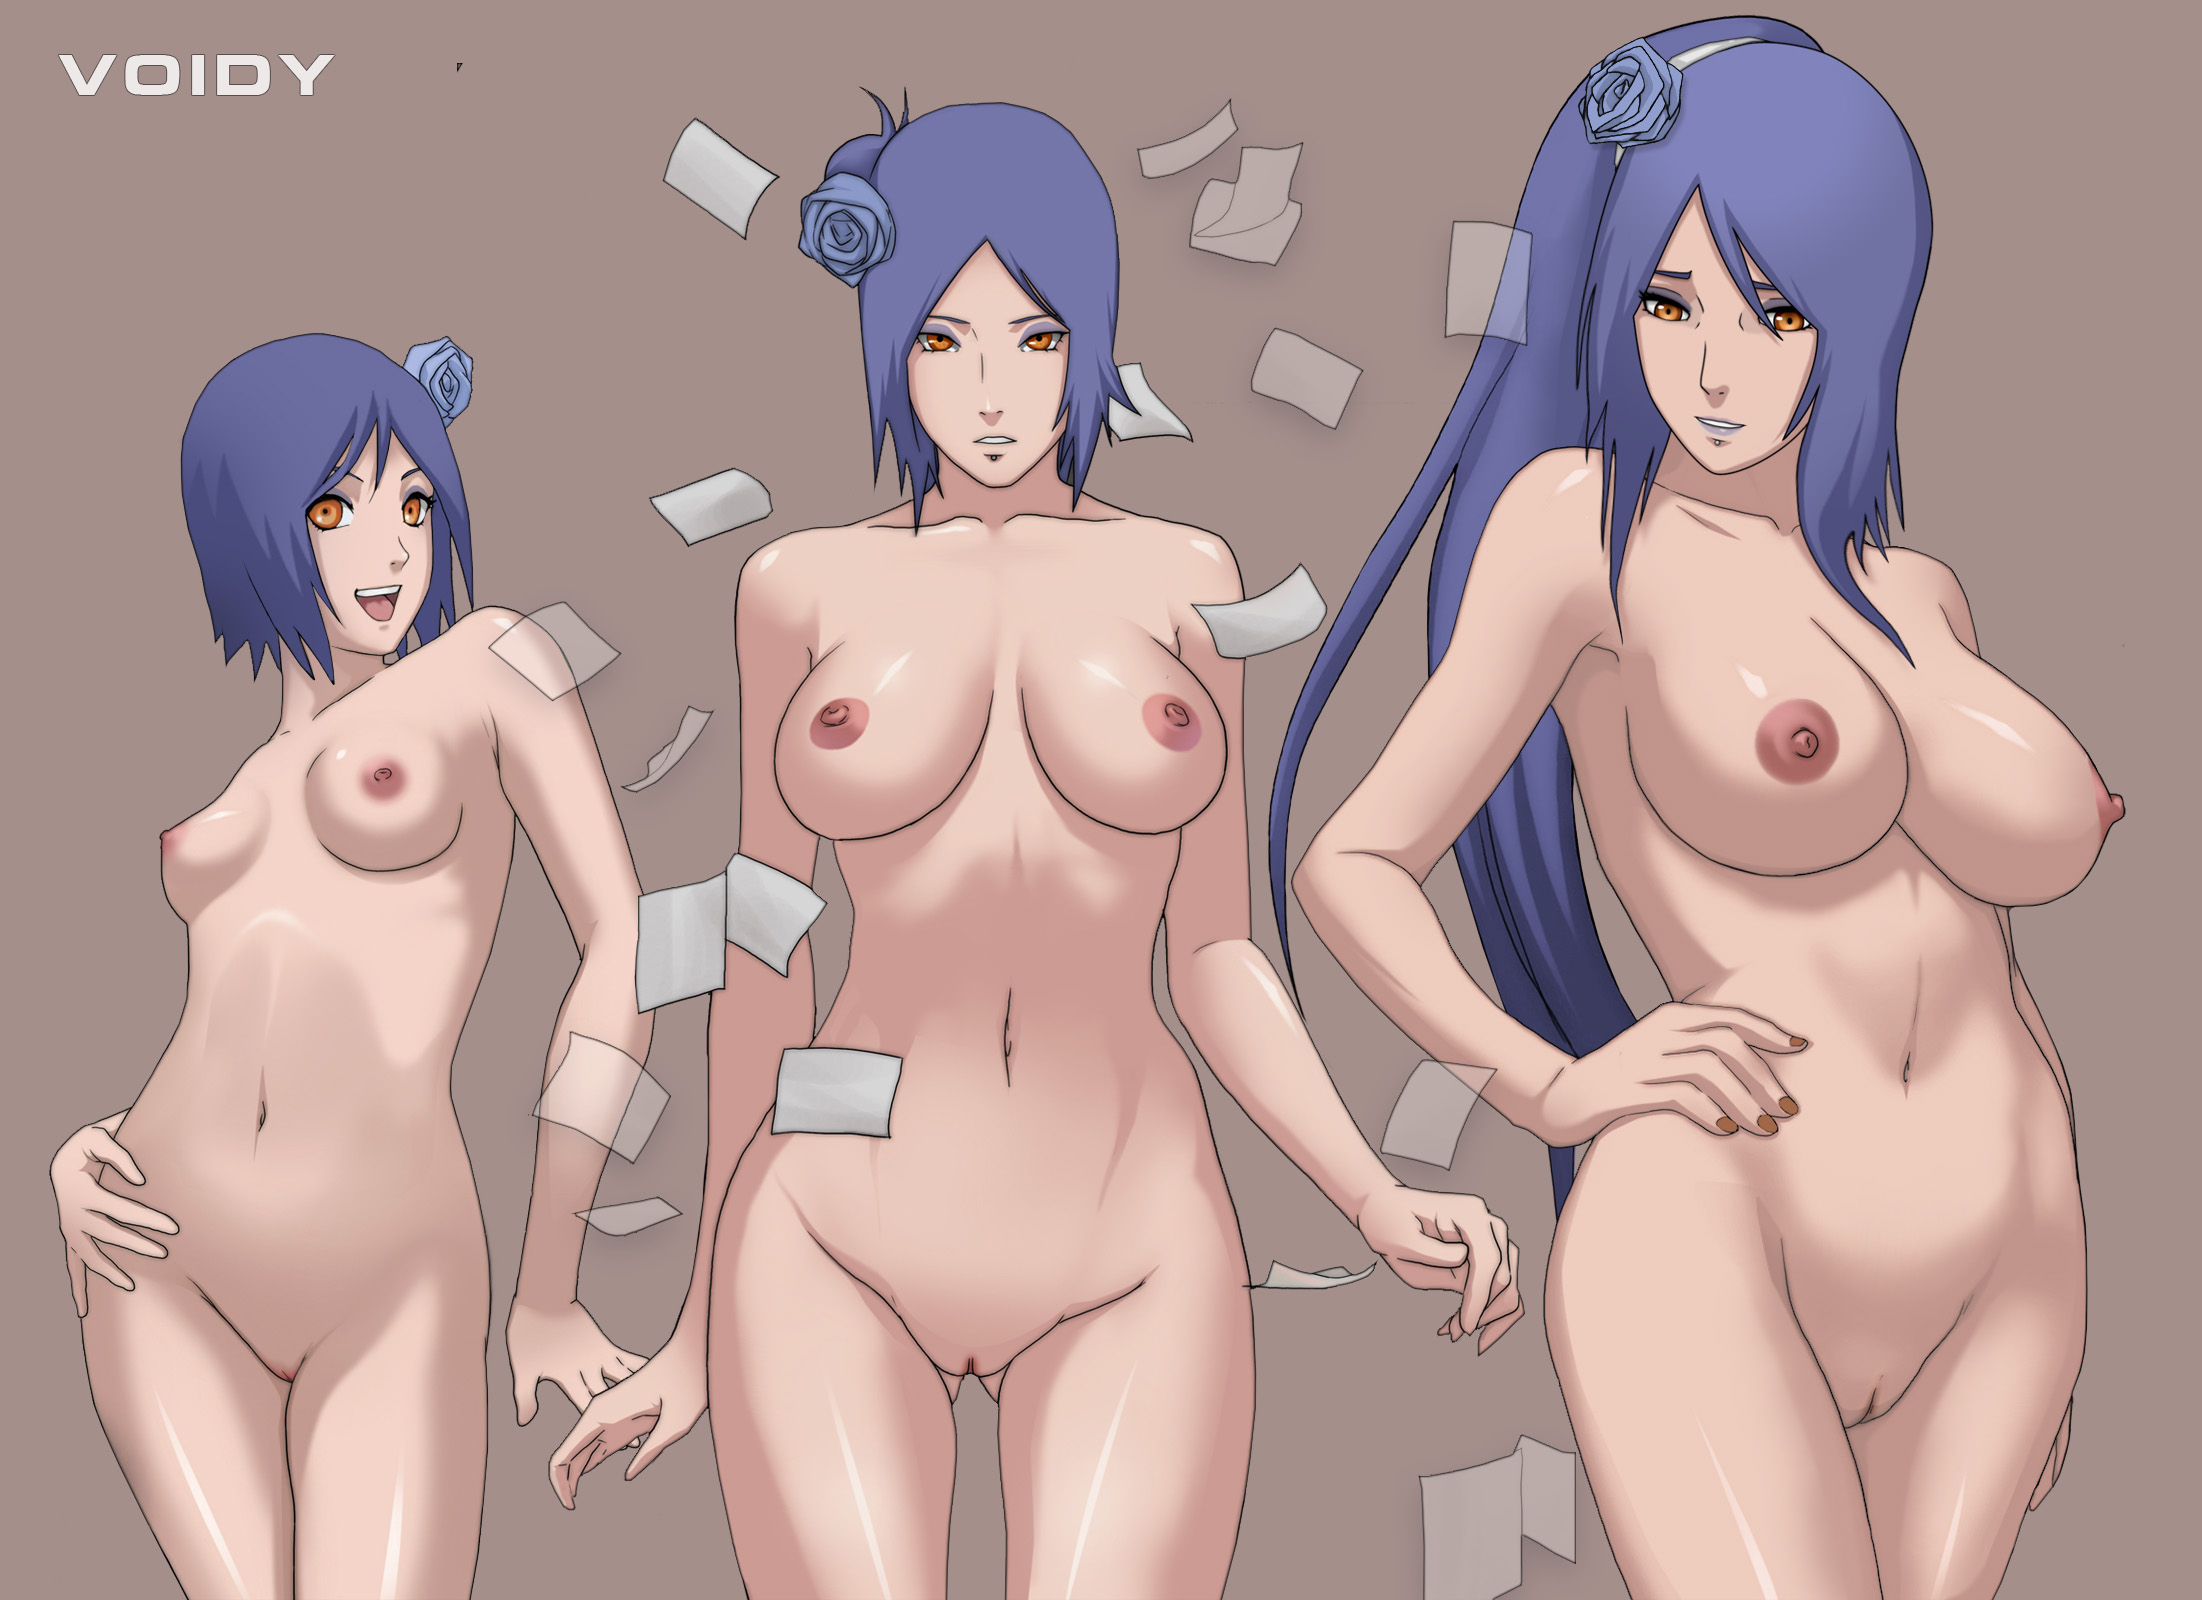 Naruto shippuden characters naked that interestingly